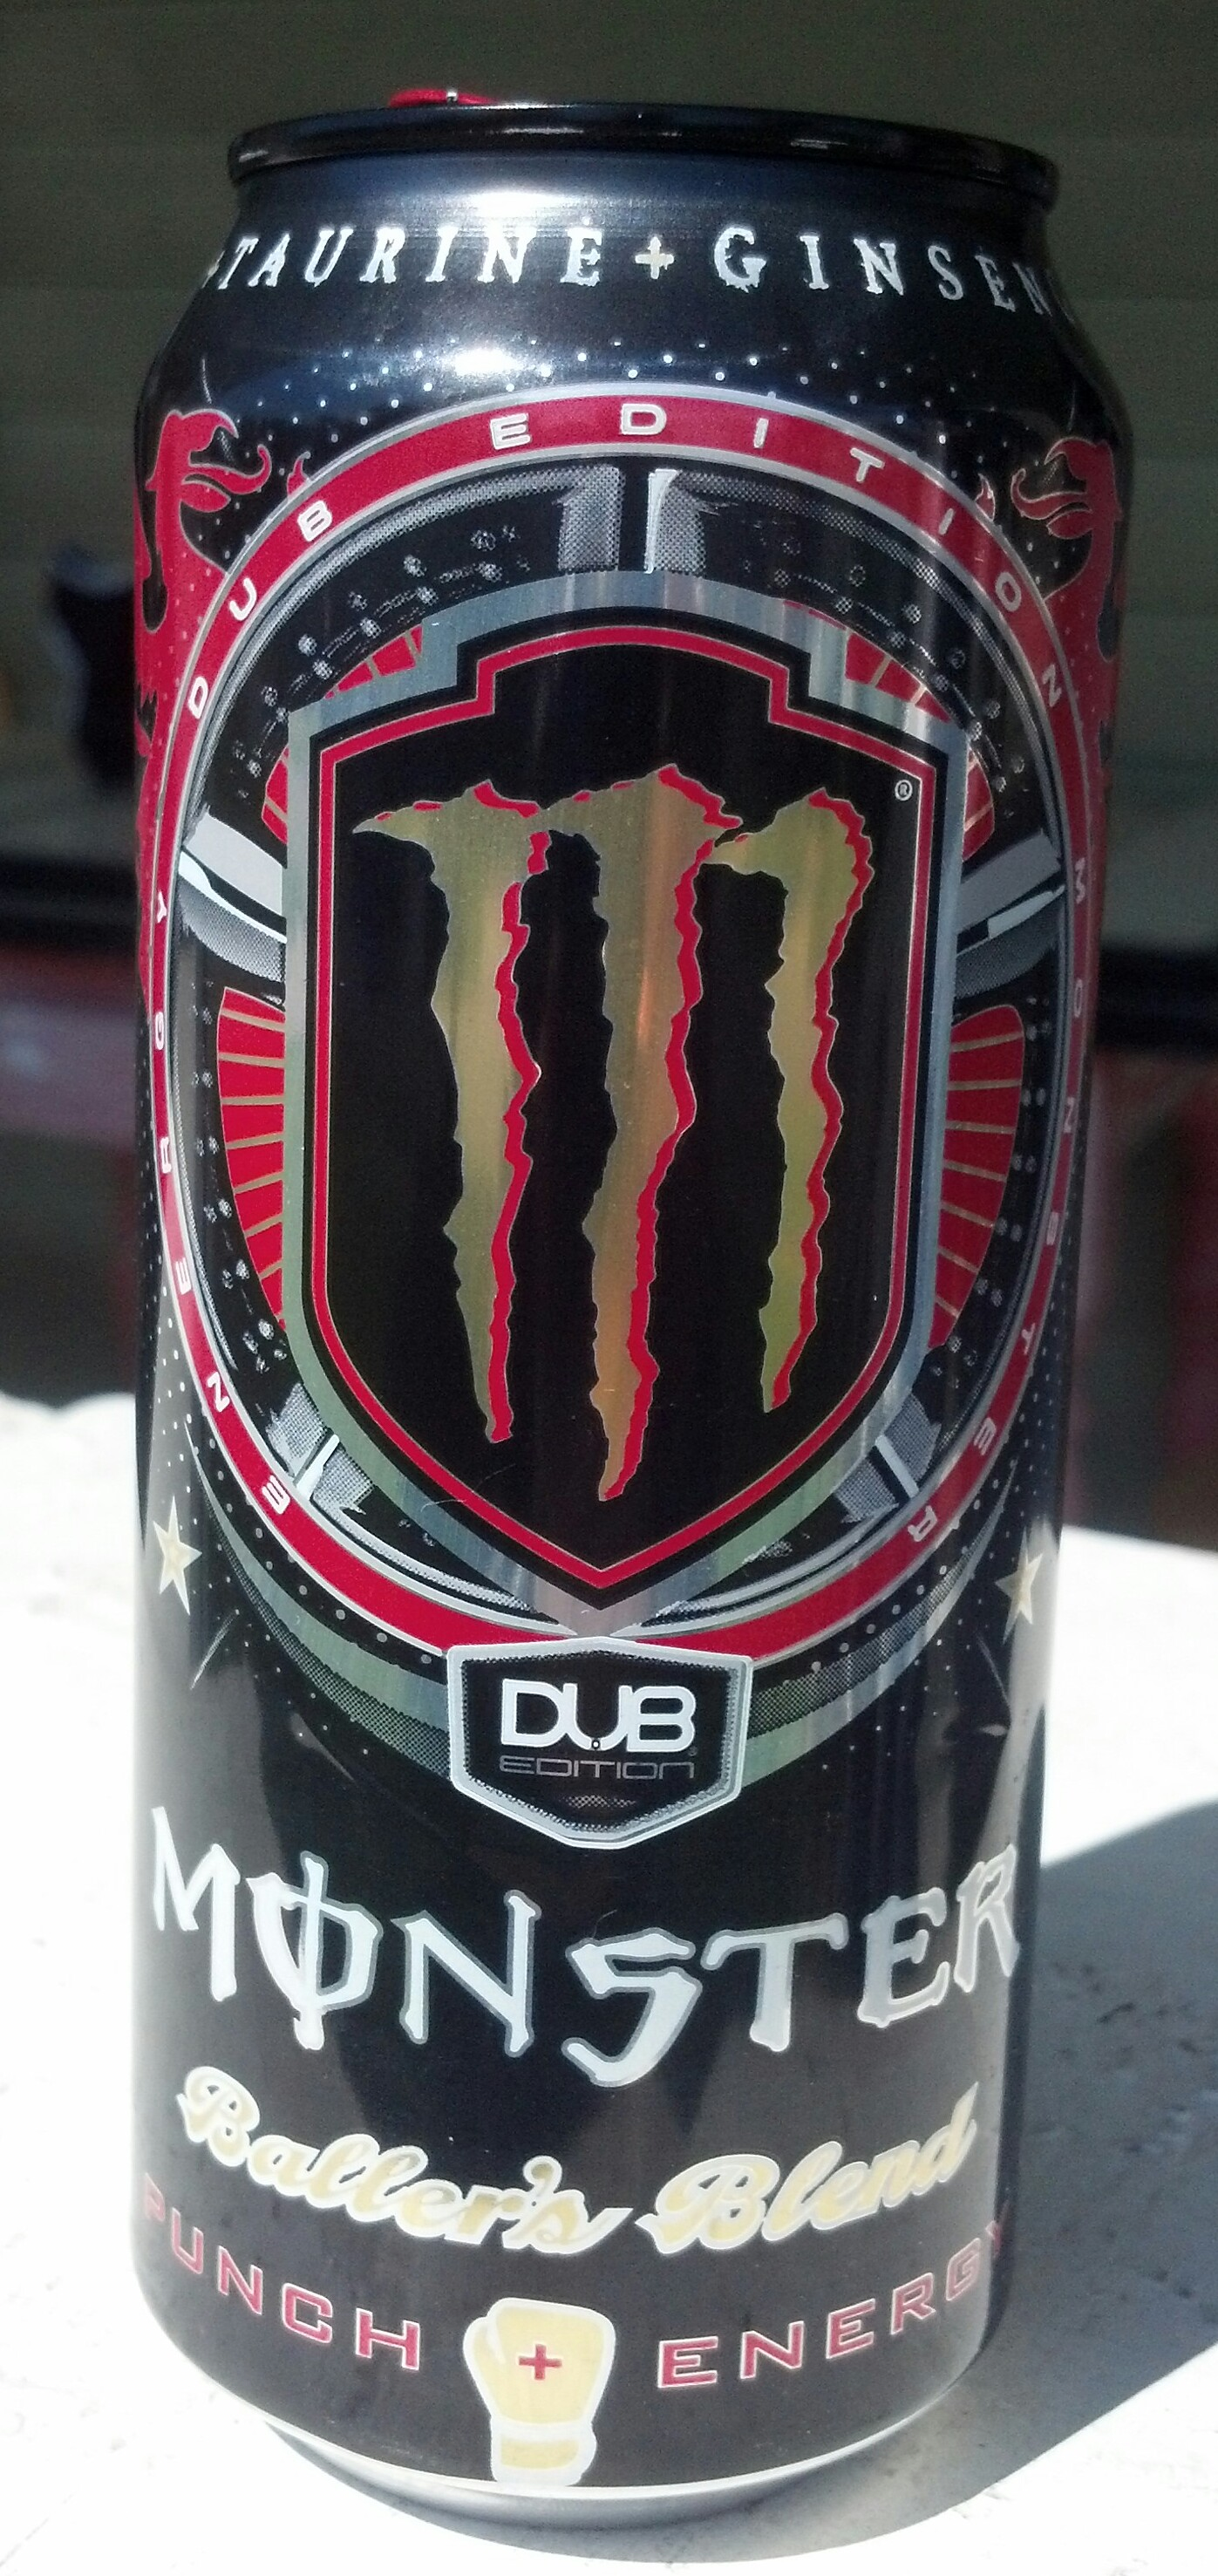 Monster dub edition punch mad dog energy drink review youtube.